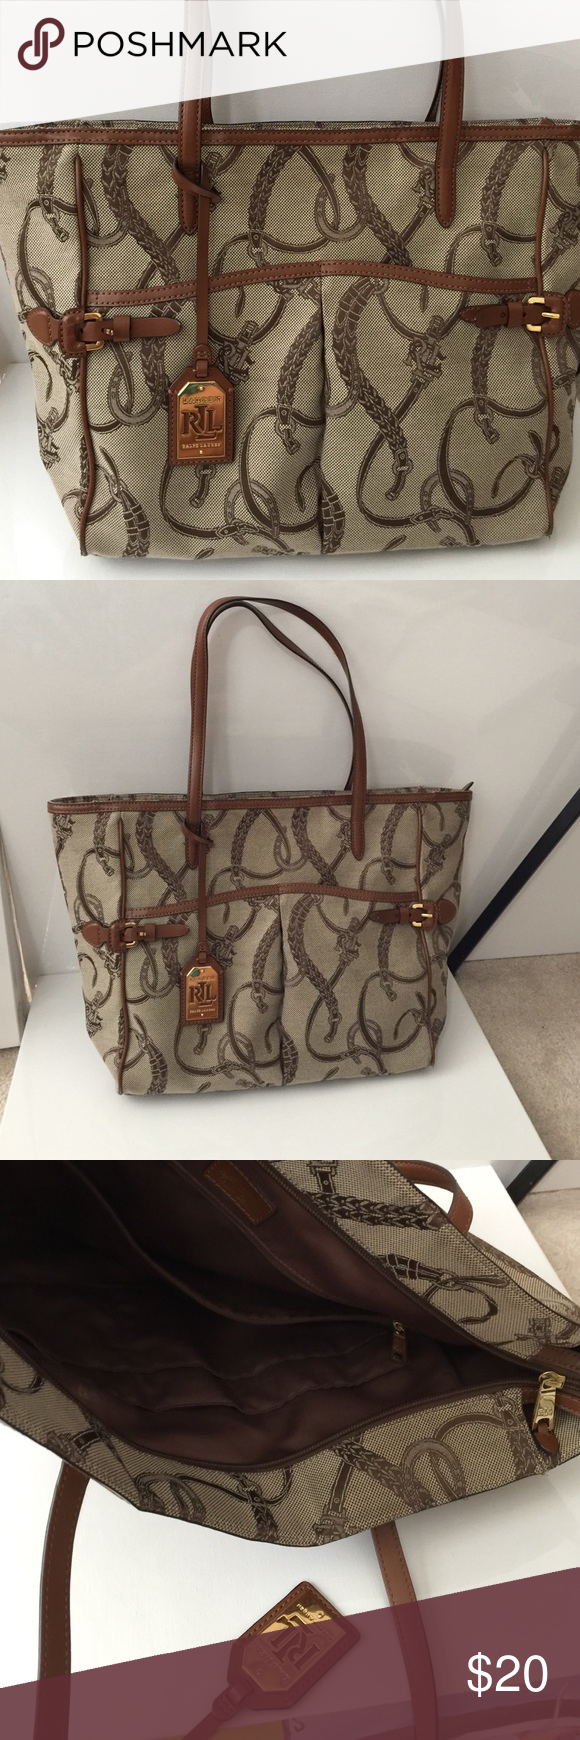 f66d7e4352 Lauren Ralph Lauren tote Lovely stylish RLL tote bag. Easy to wear. Classic  styling. Ralph Lauren Bags Totes